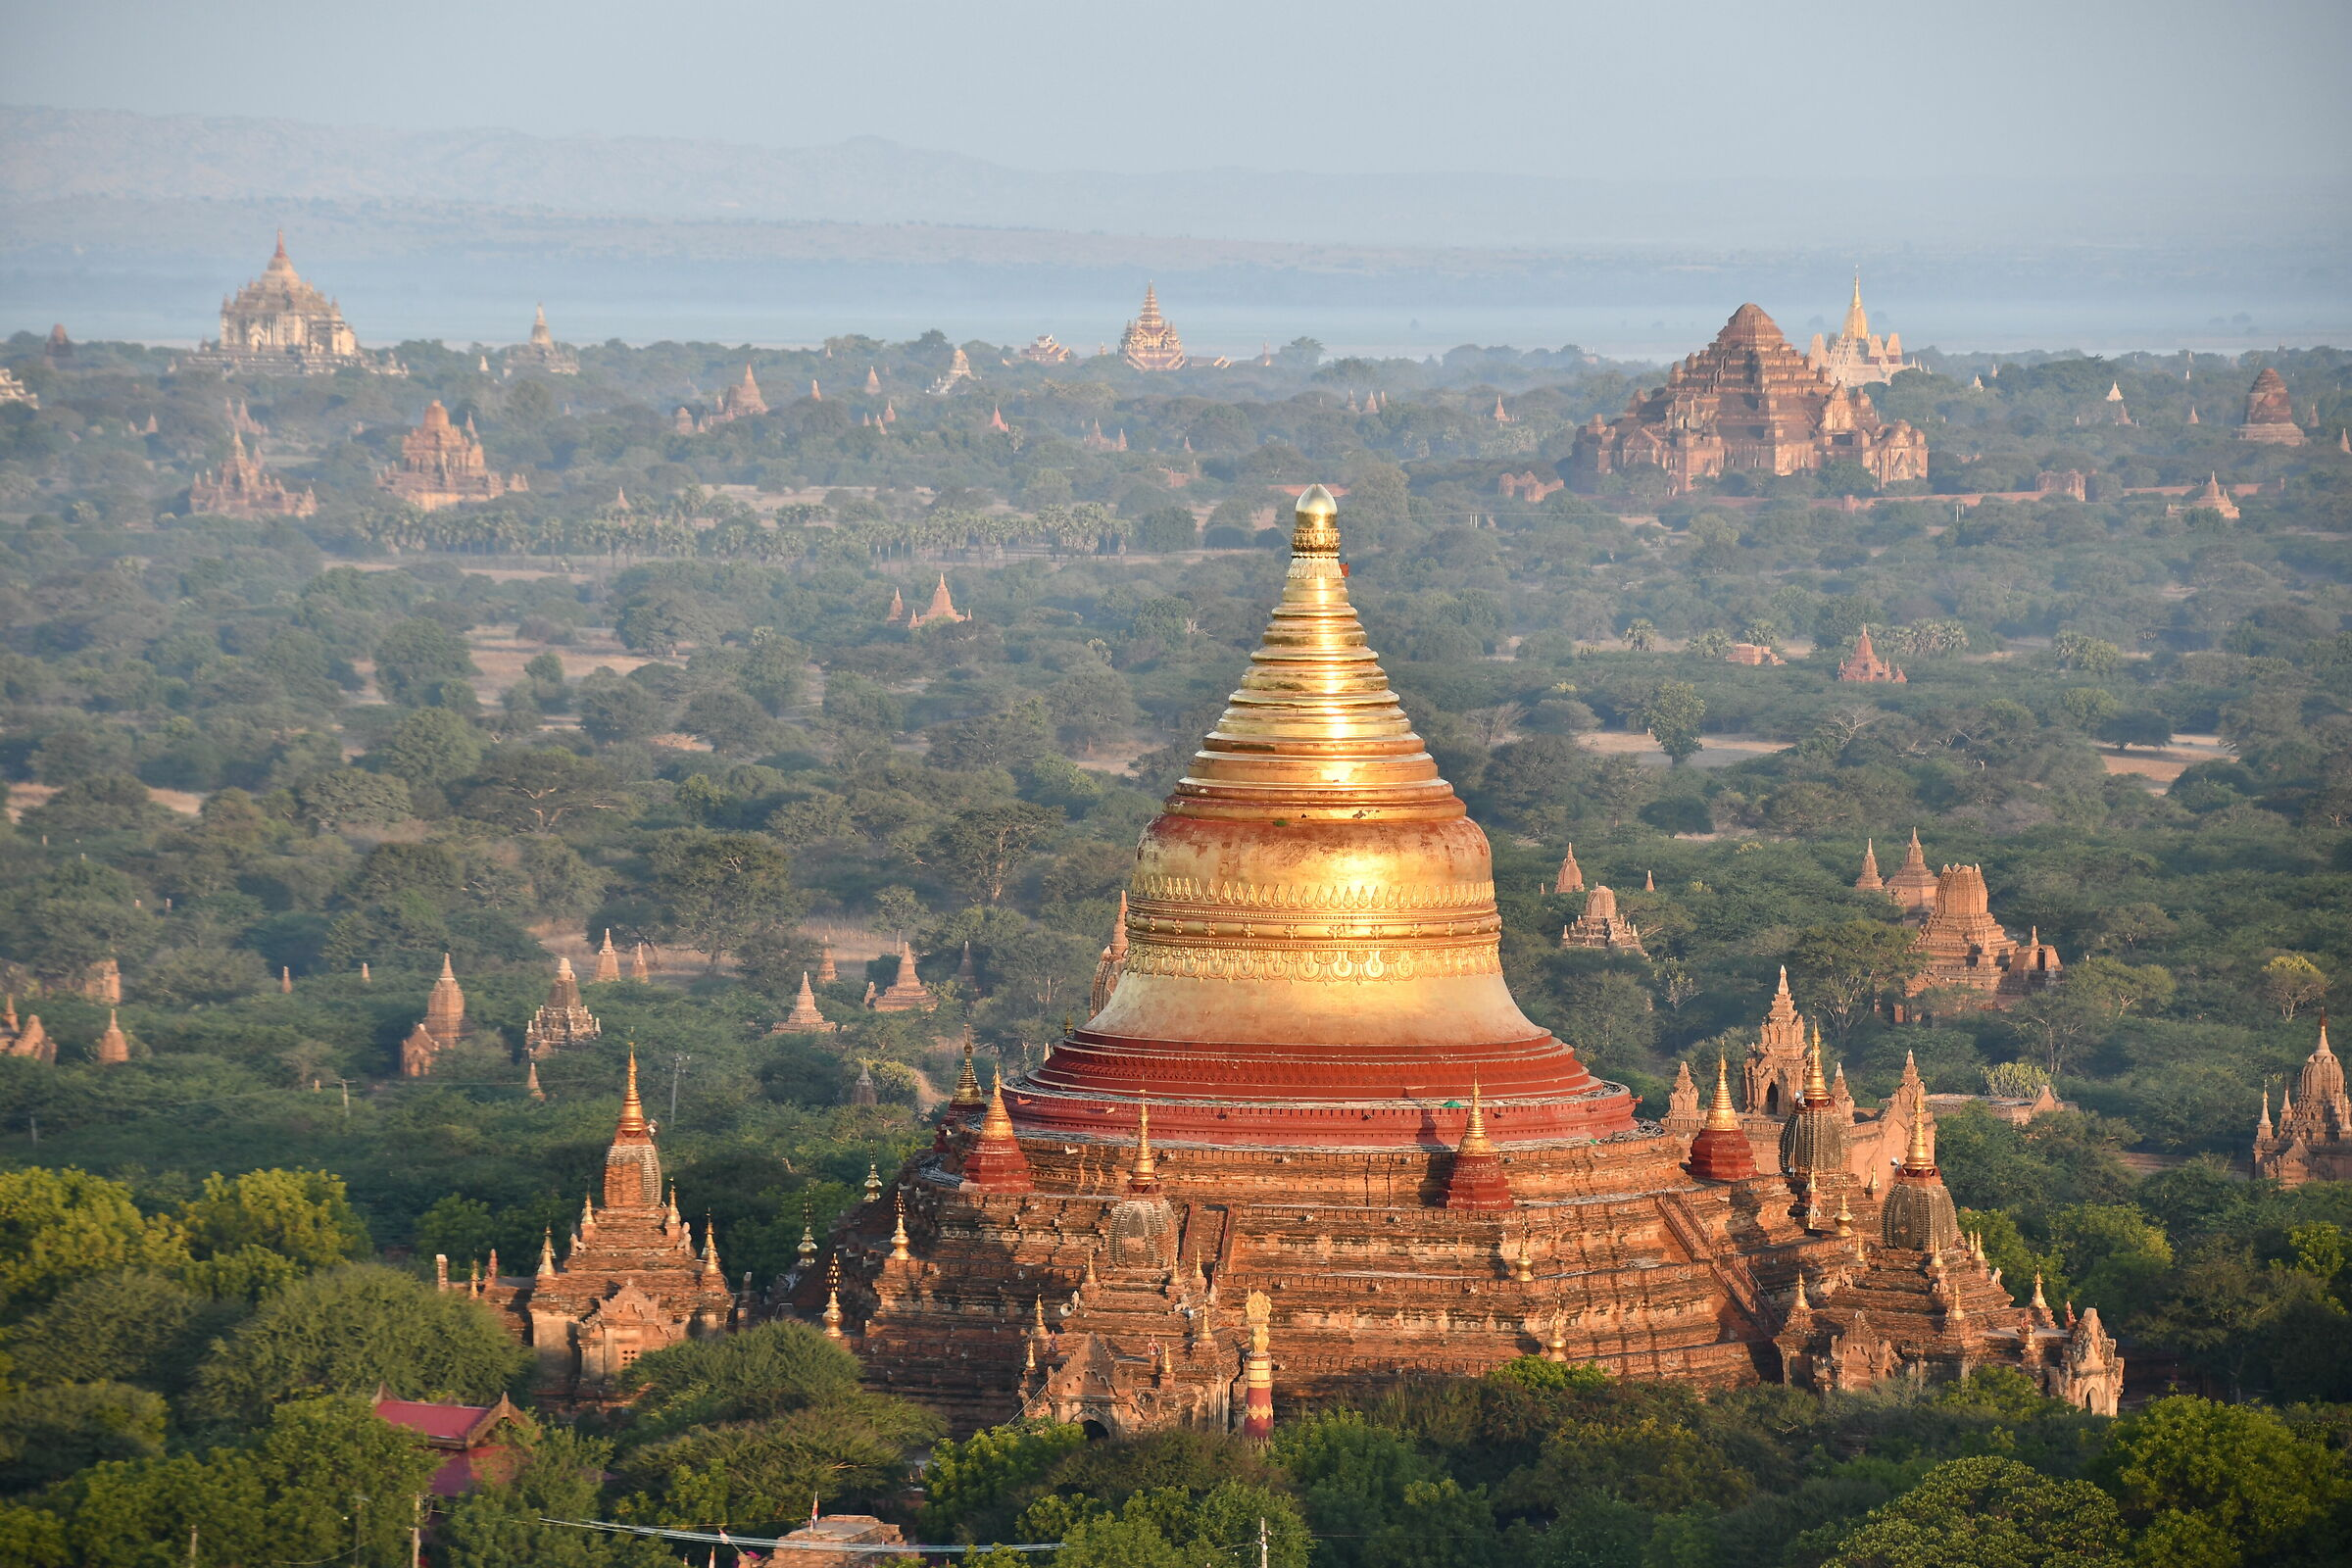 Temples seen from the Hot Air Balloon in Bagan...